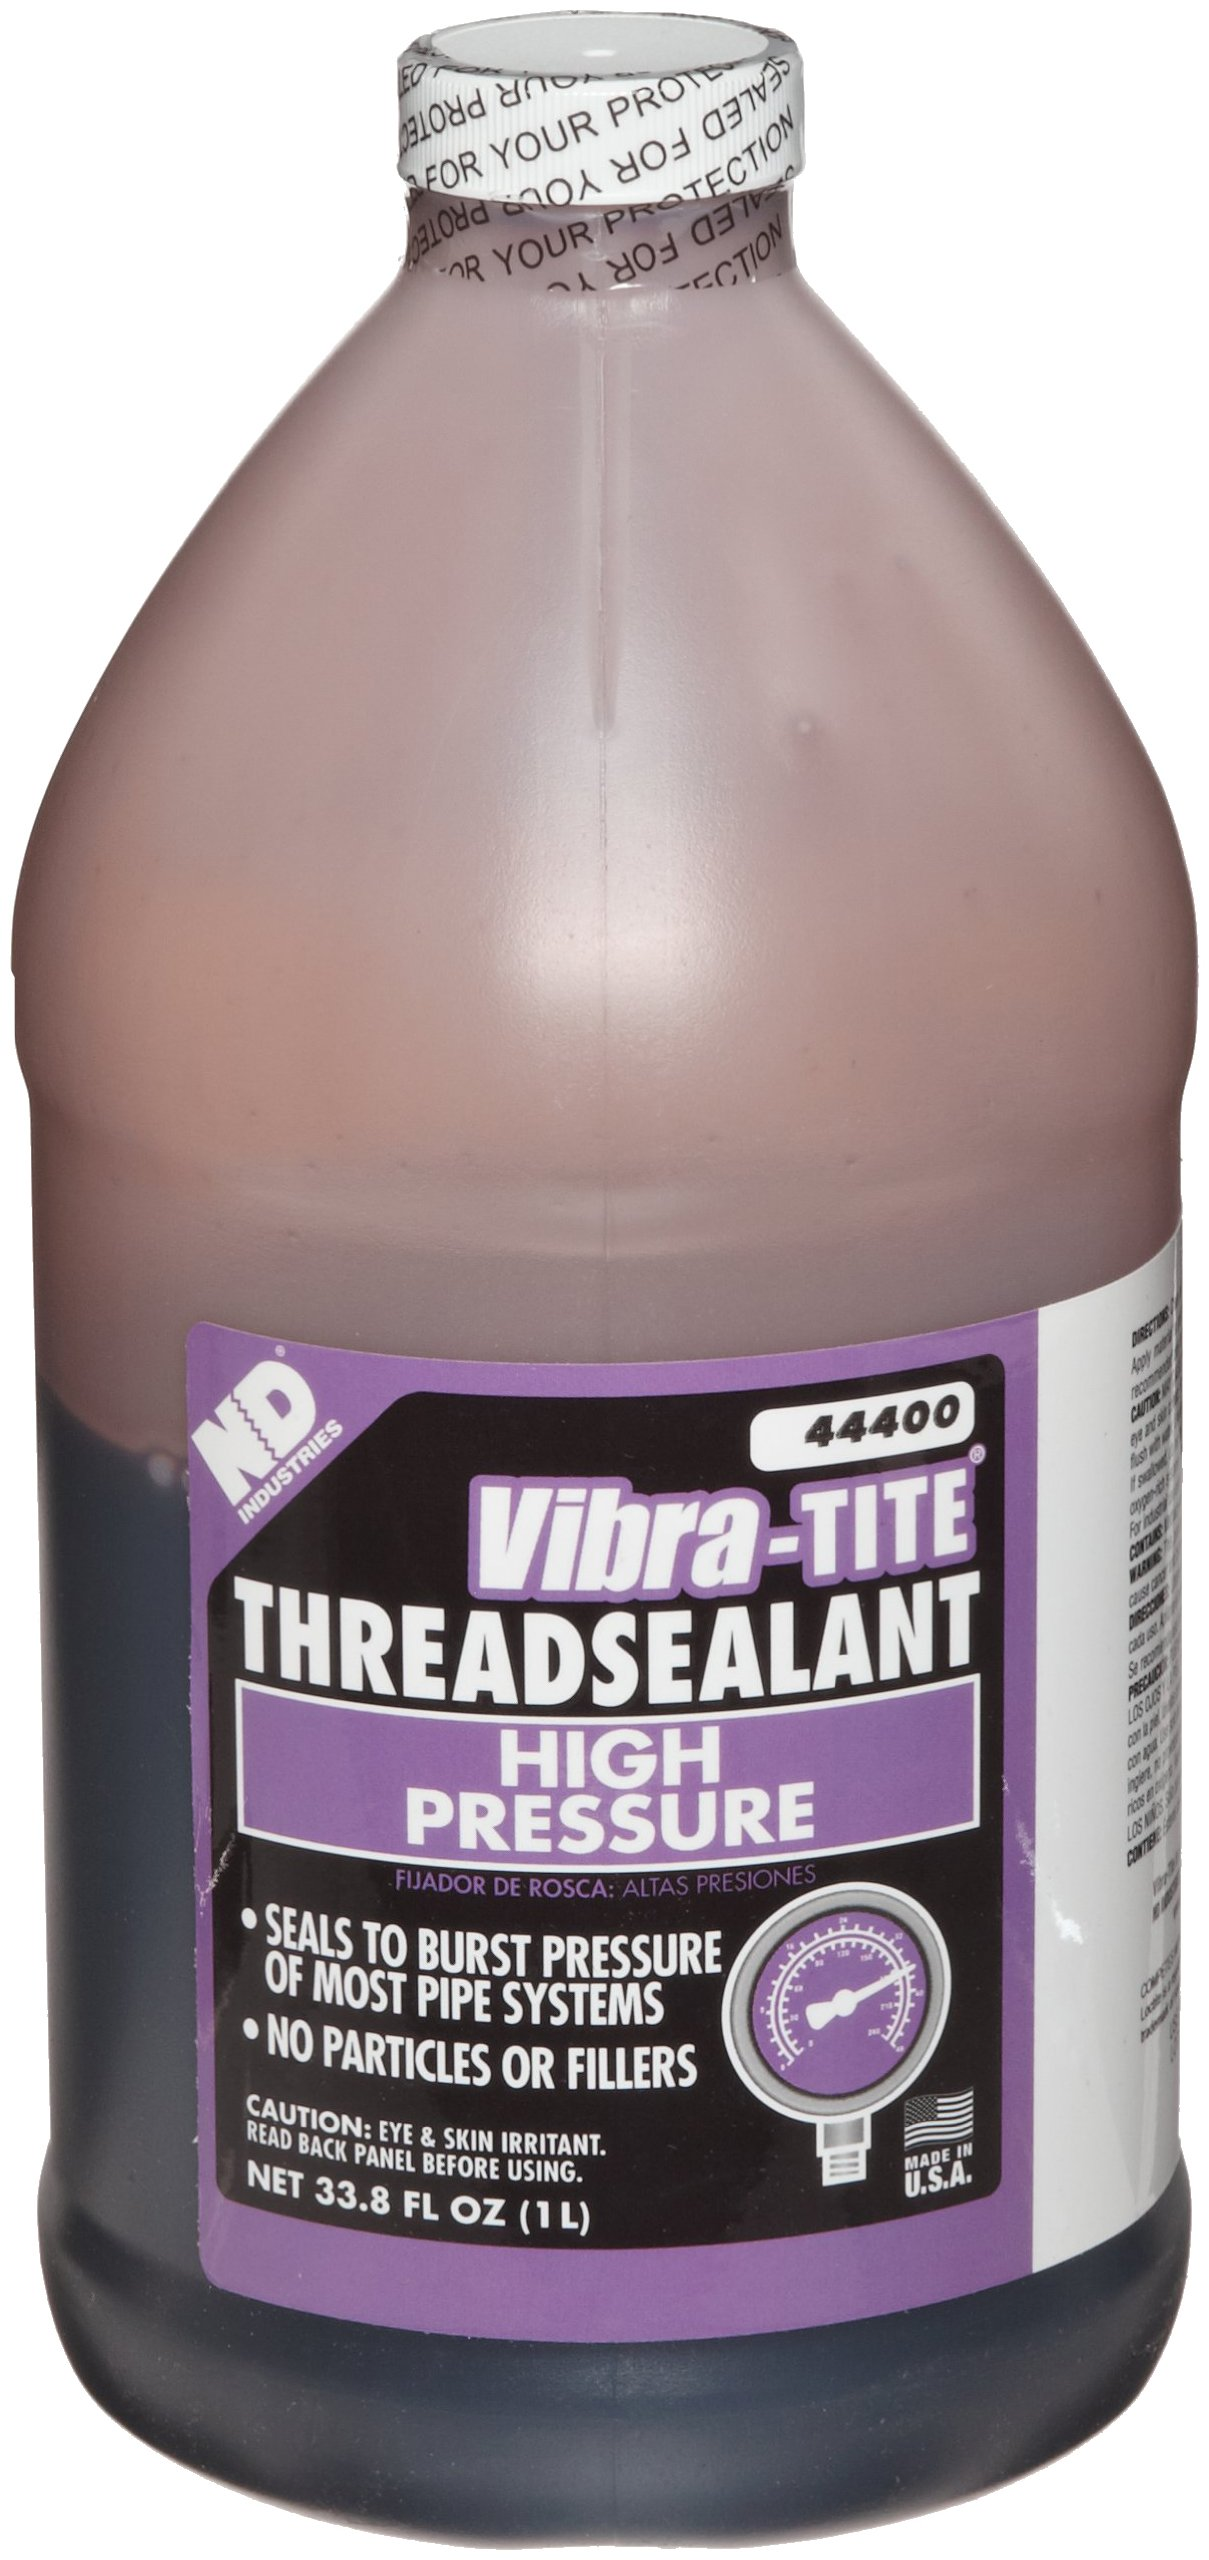 Vibra-TITE 444 Brown High Pressure Hydraulic Anaerobic Thread Sealant, 1 liter Jug